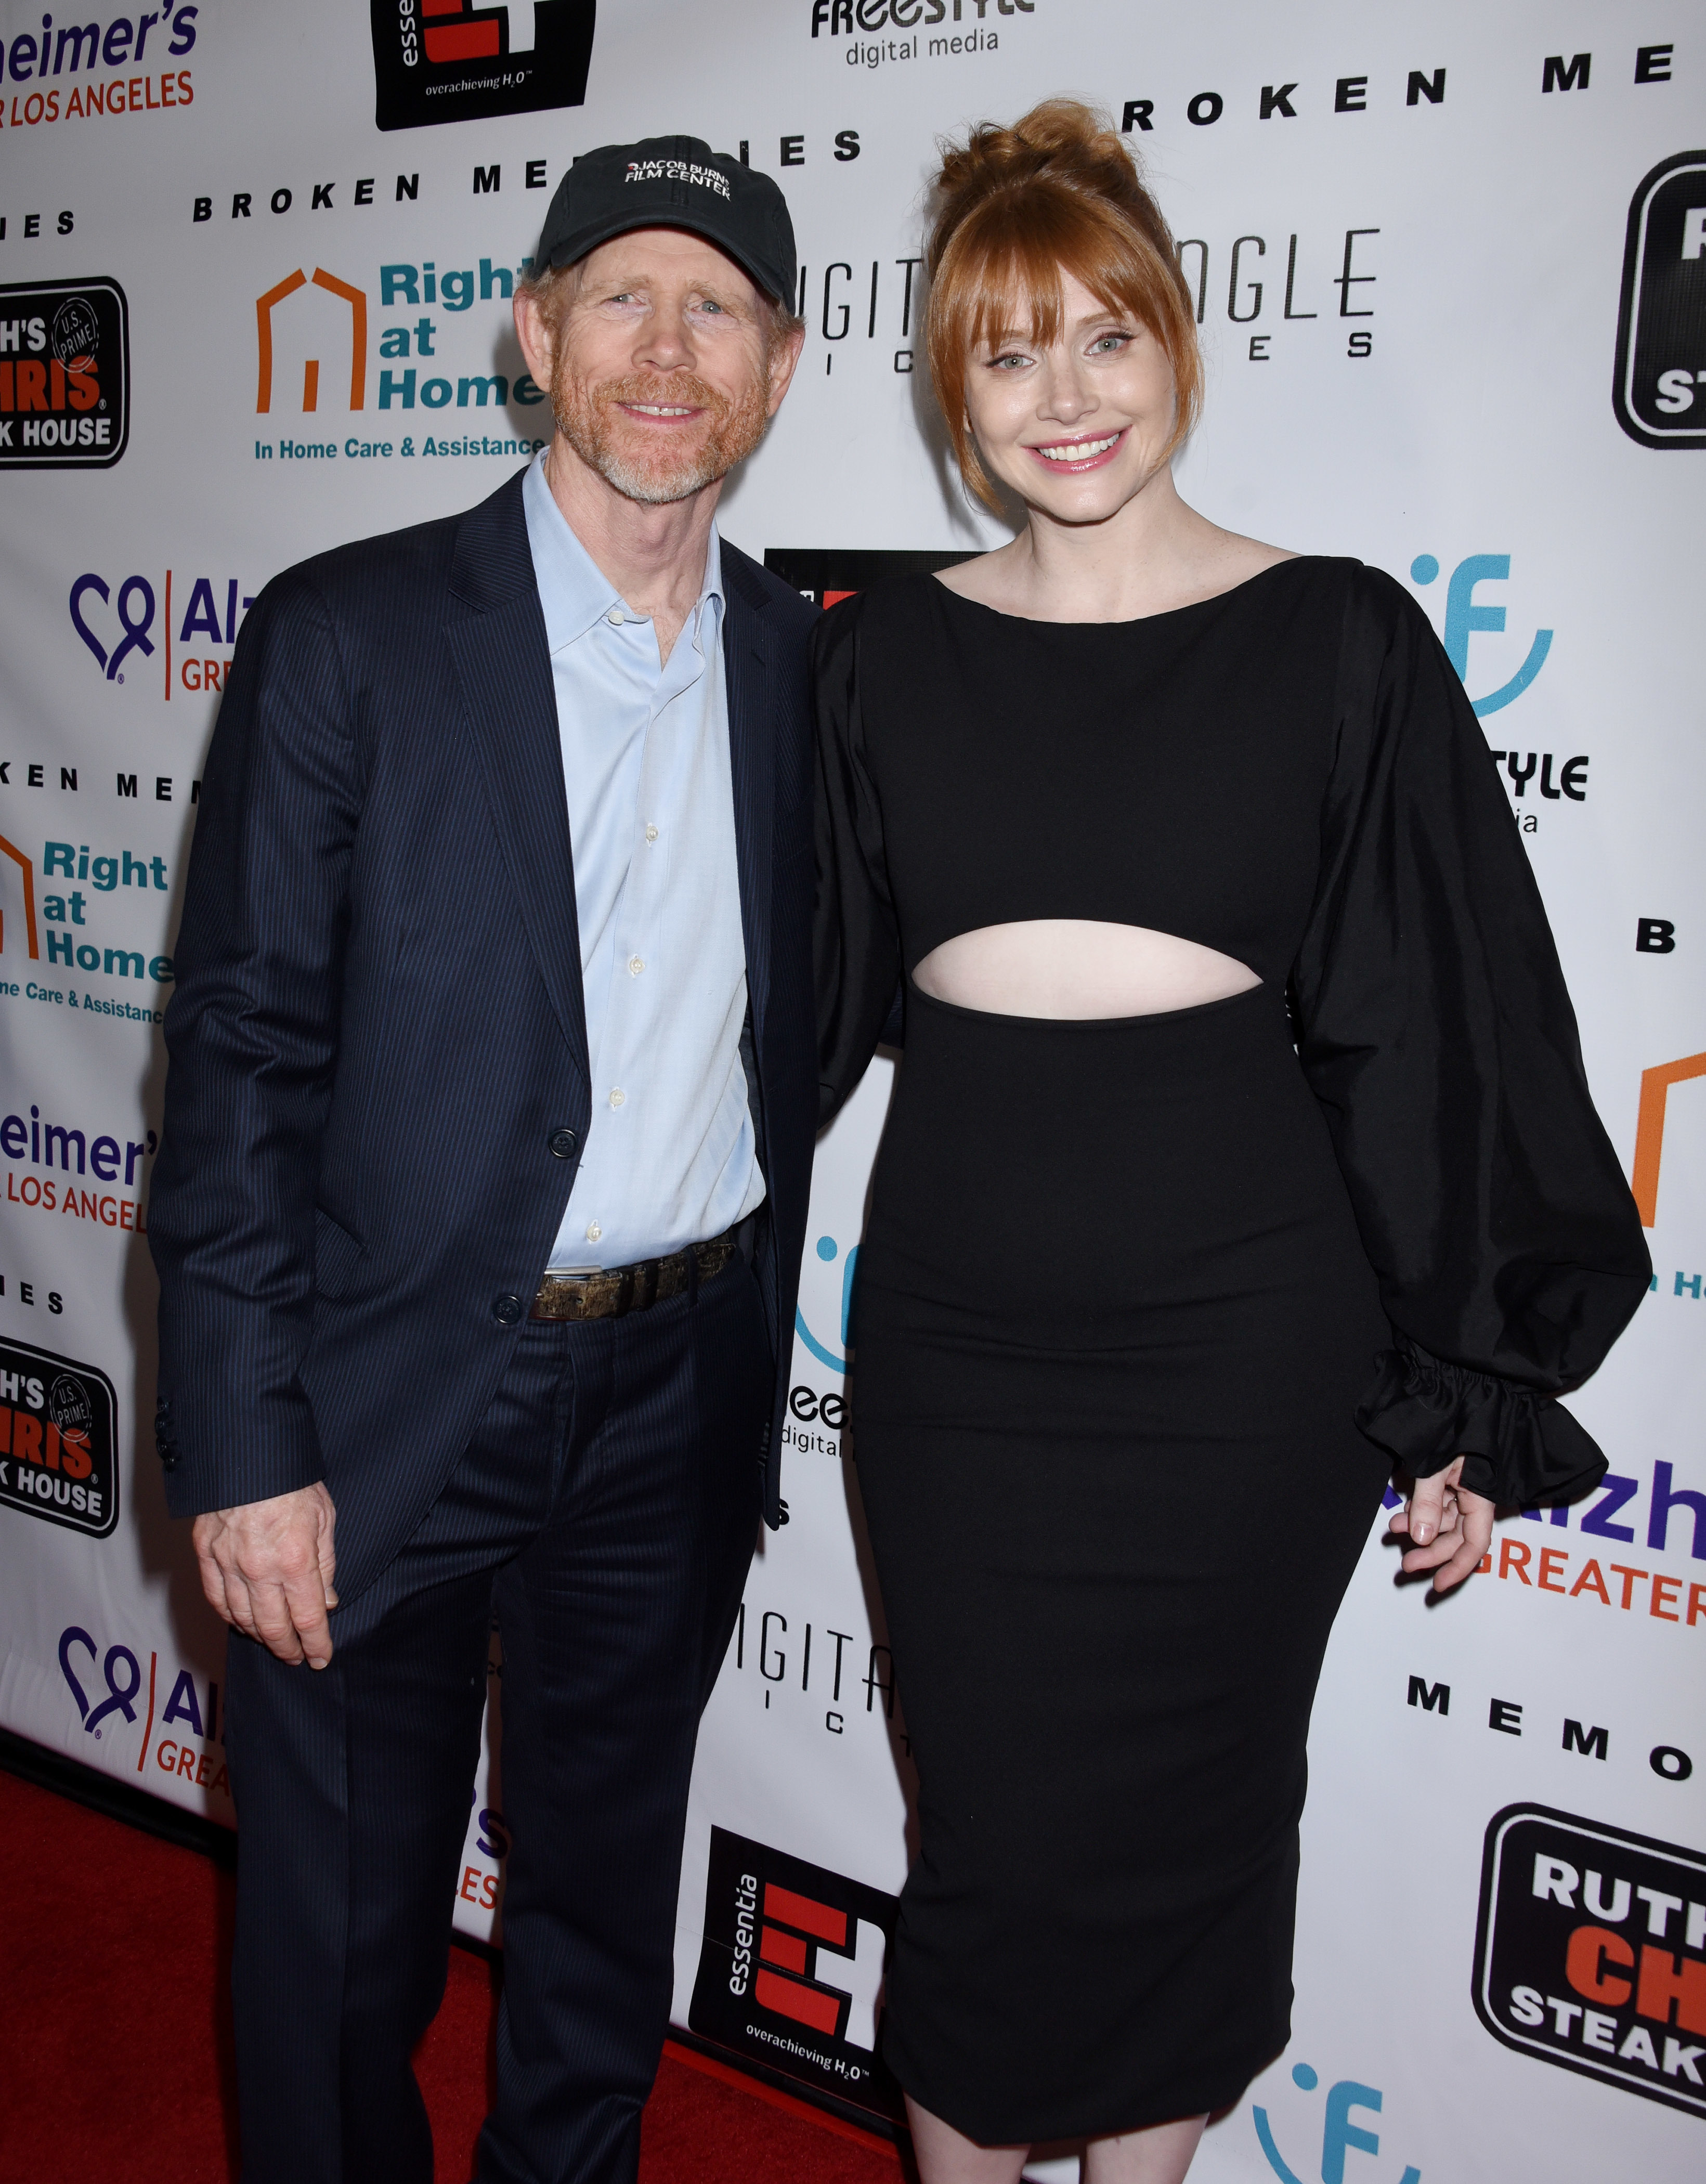 "Ron Howard and Bryce Dallas Howard attend the ""Broken Memories"" premiere in Los Angeles on Nov. 14, 2017."